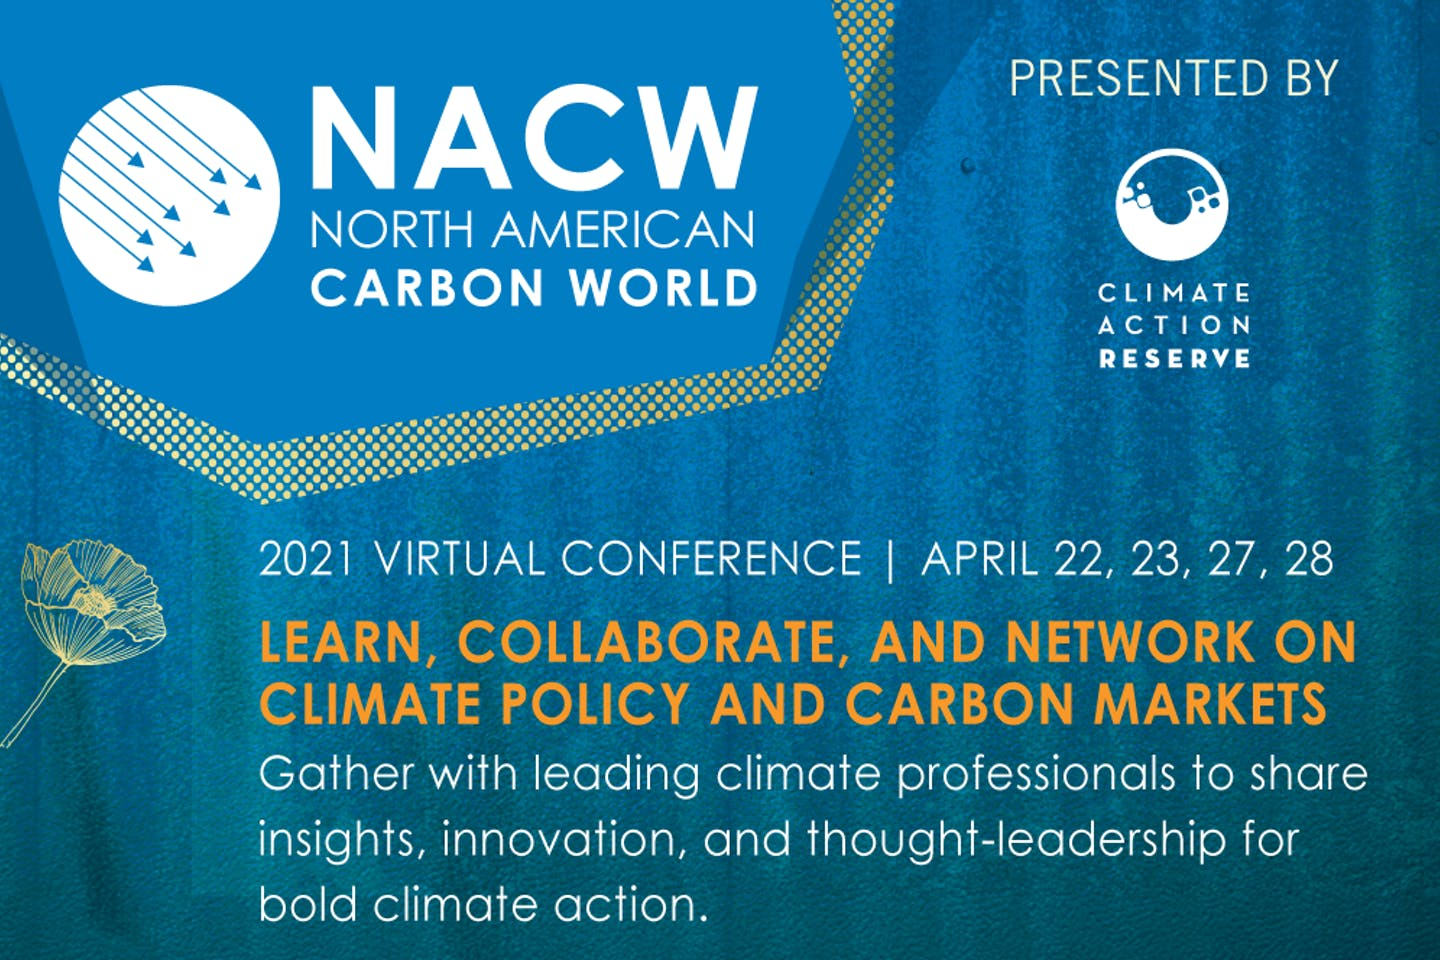 North American Carbon World (NACW) 2021 Virtual Conference